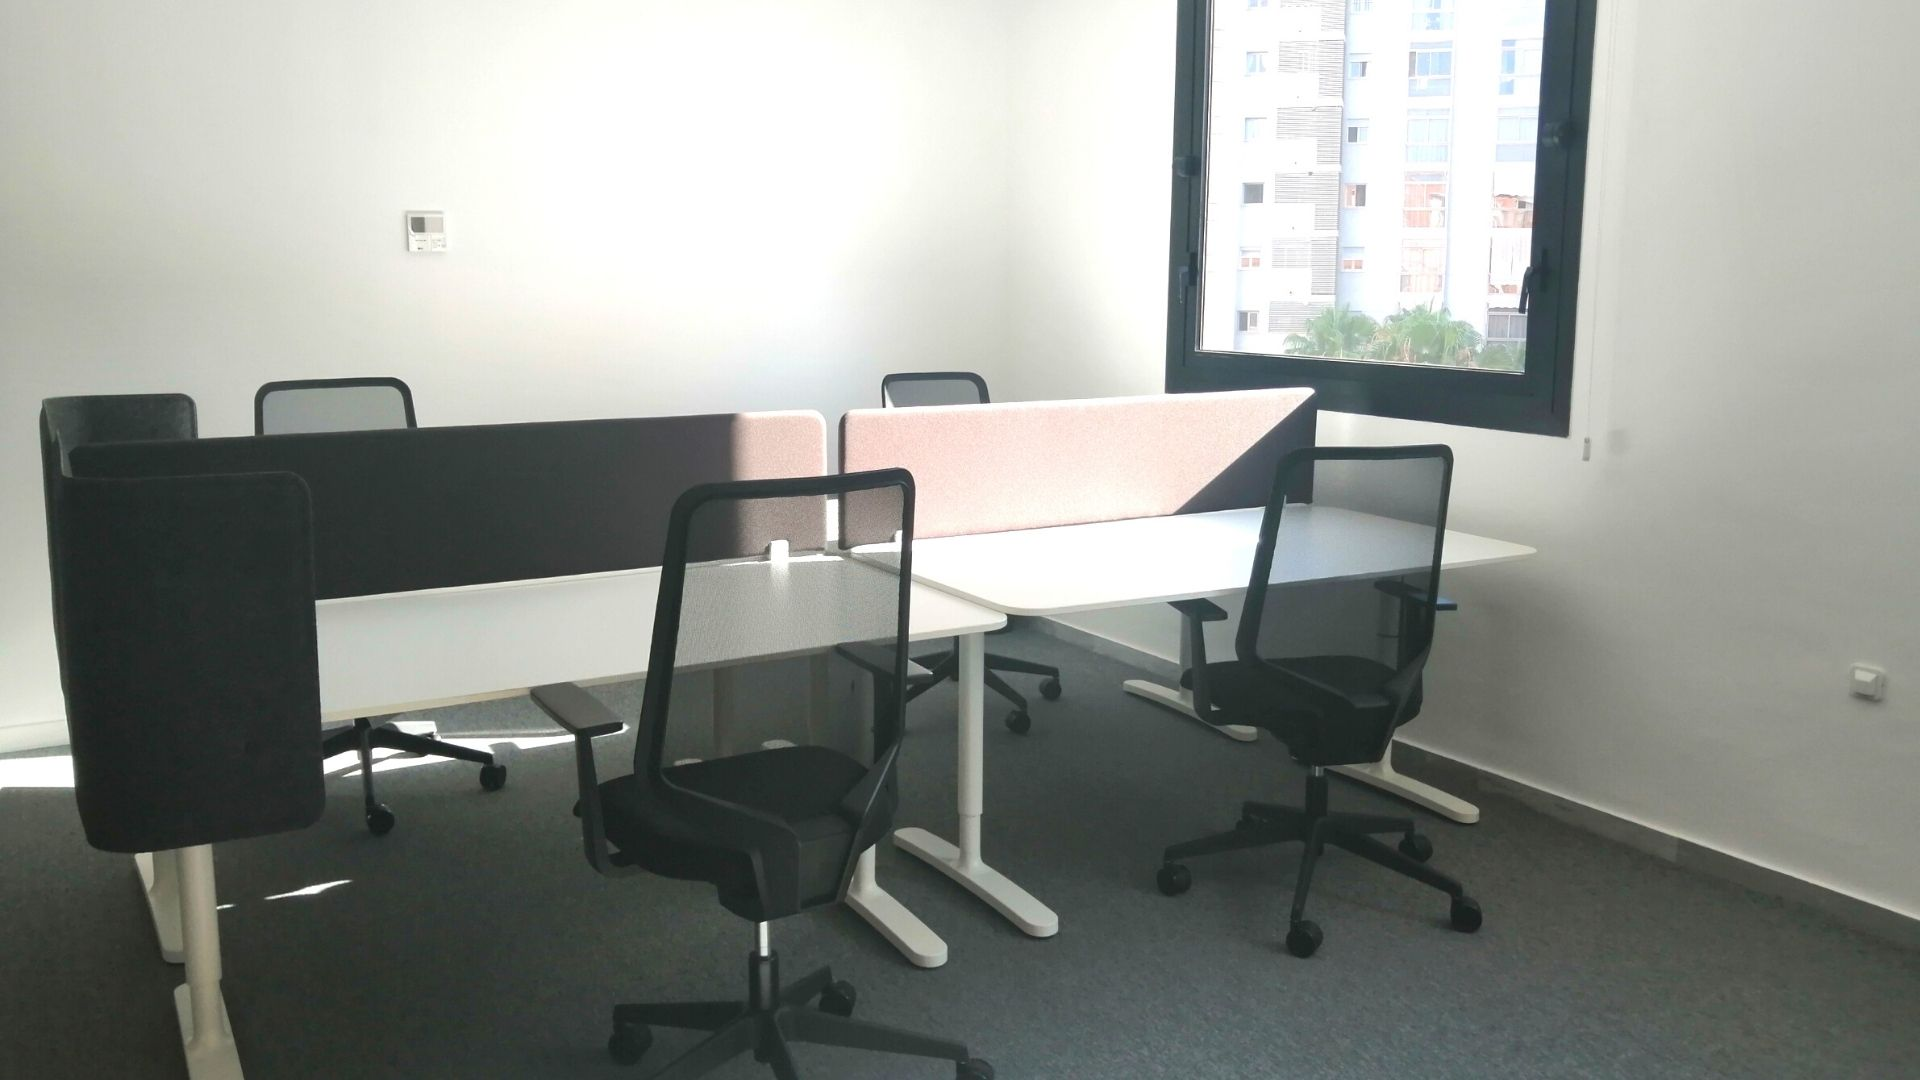 Our new Adessa office in Malaga is open! - first desks